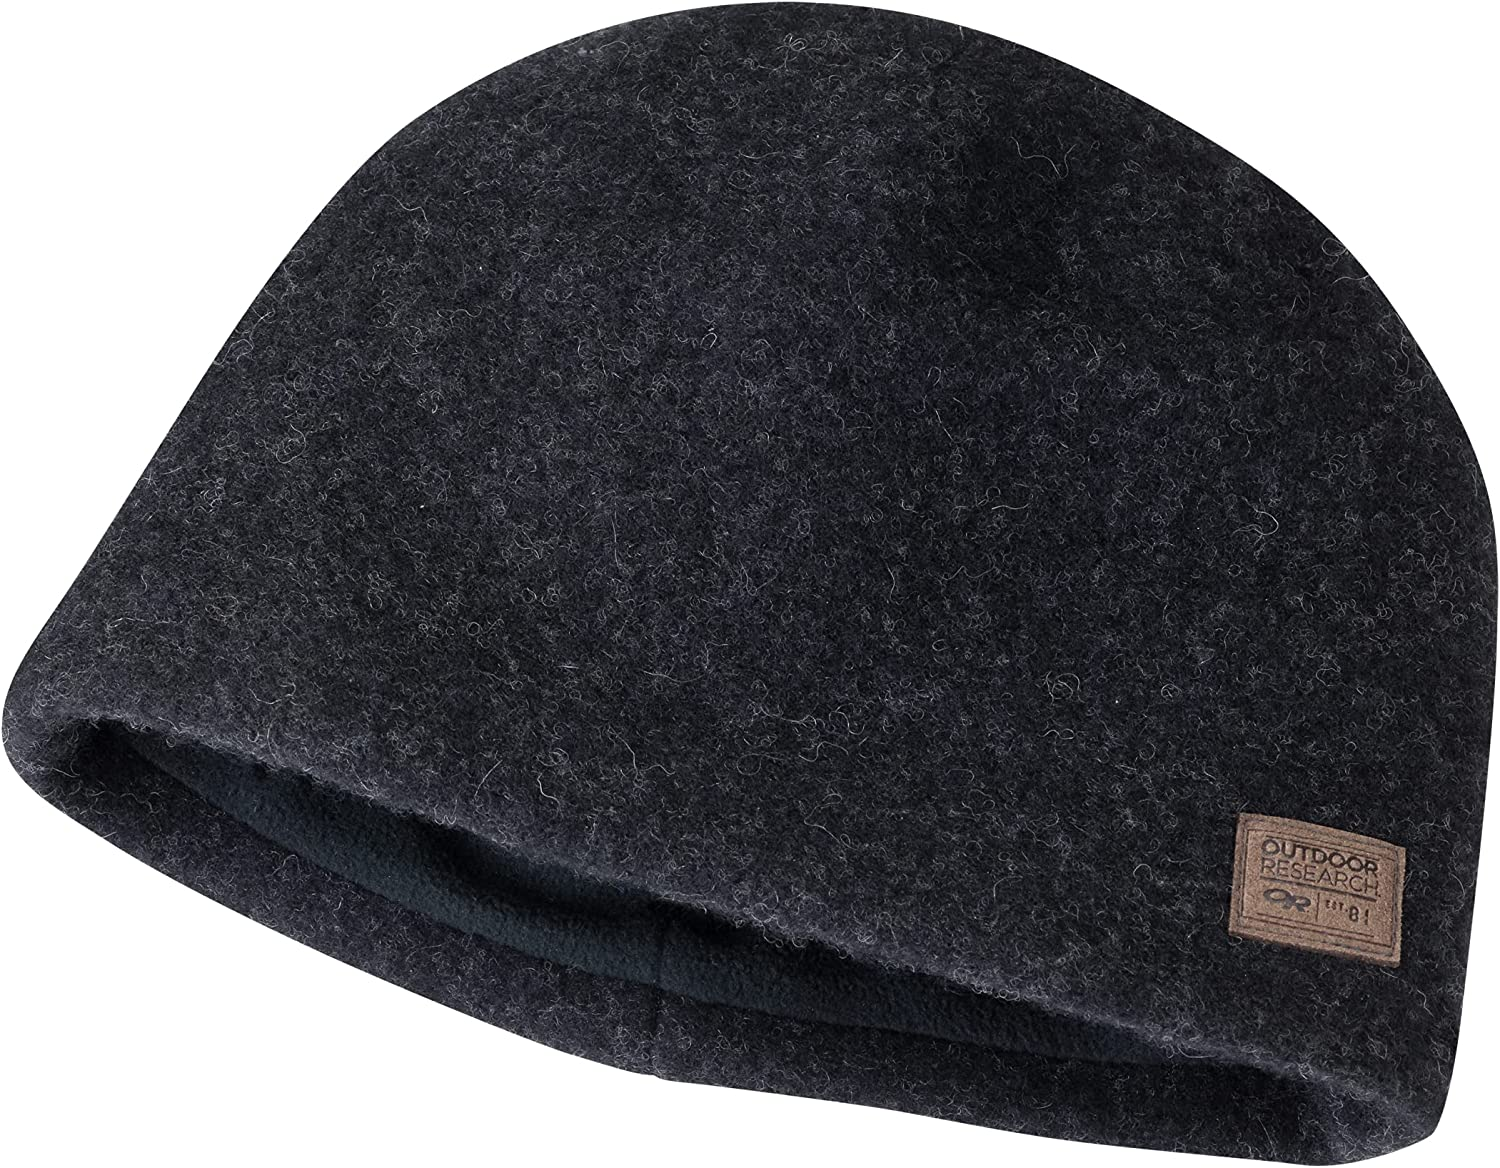 Outdoor New mail order Research Excellent Whiskey Peak Beanie